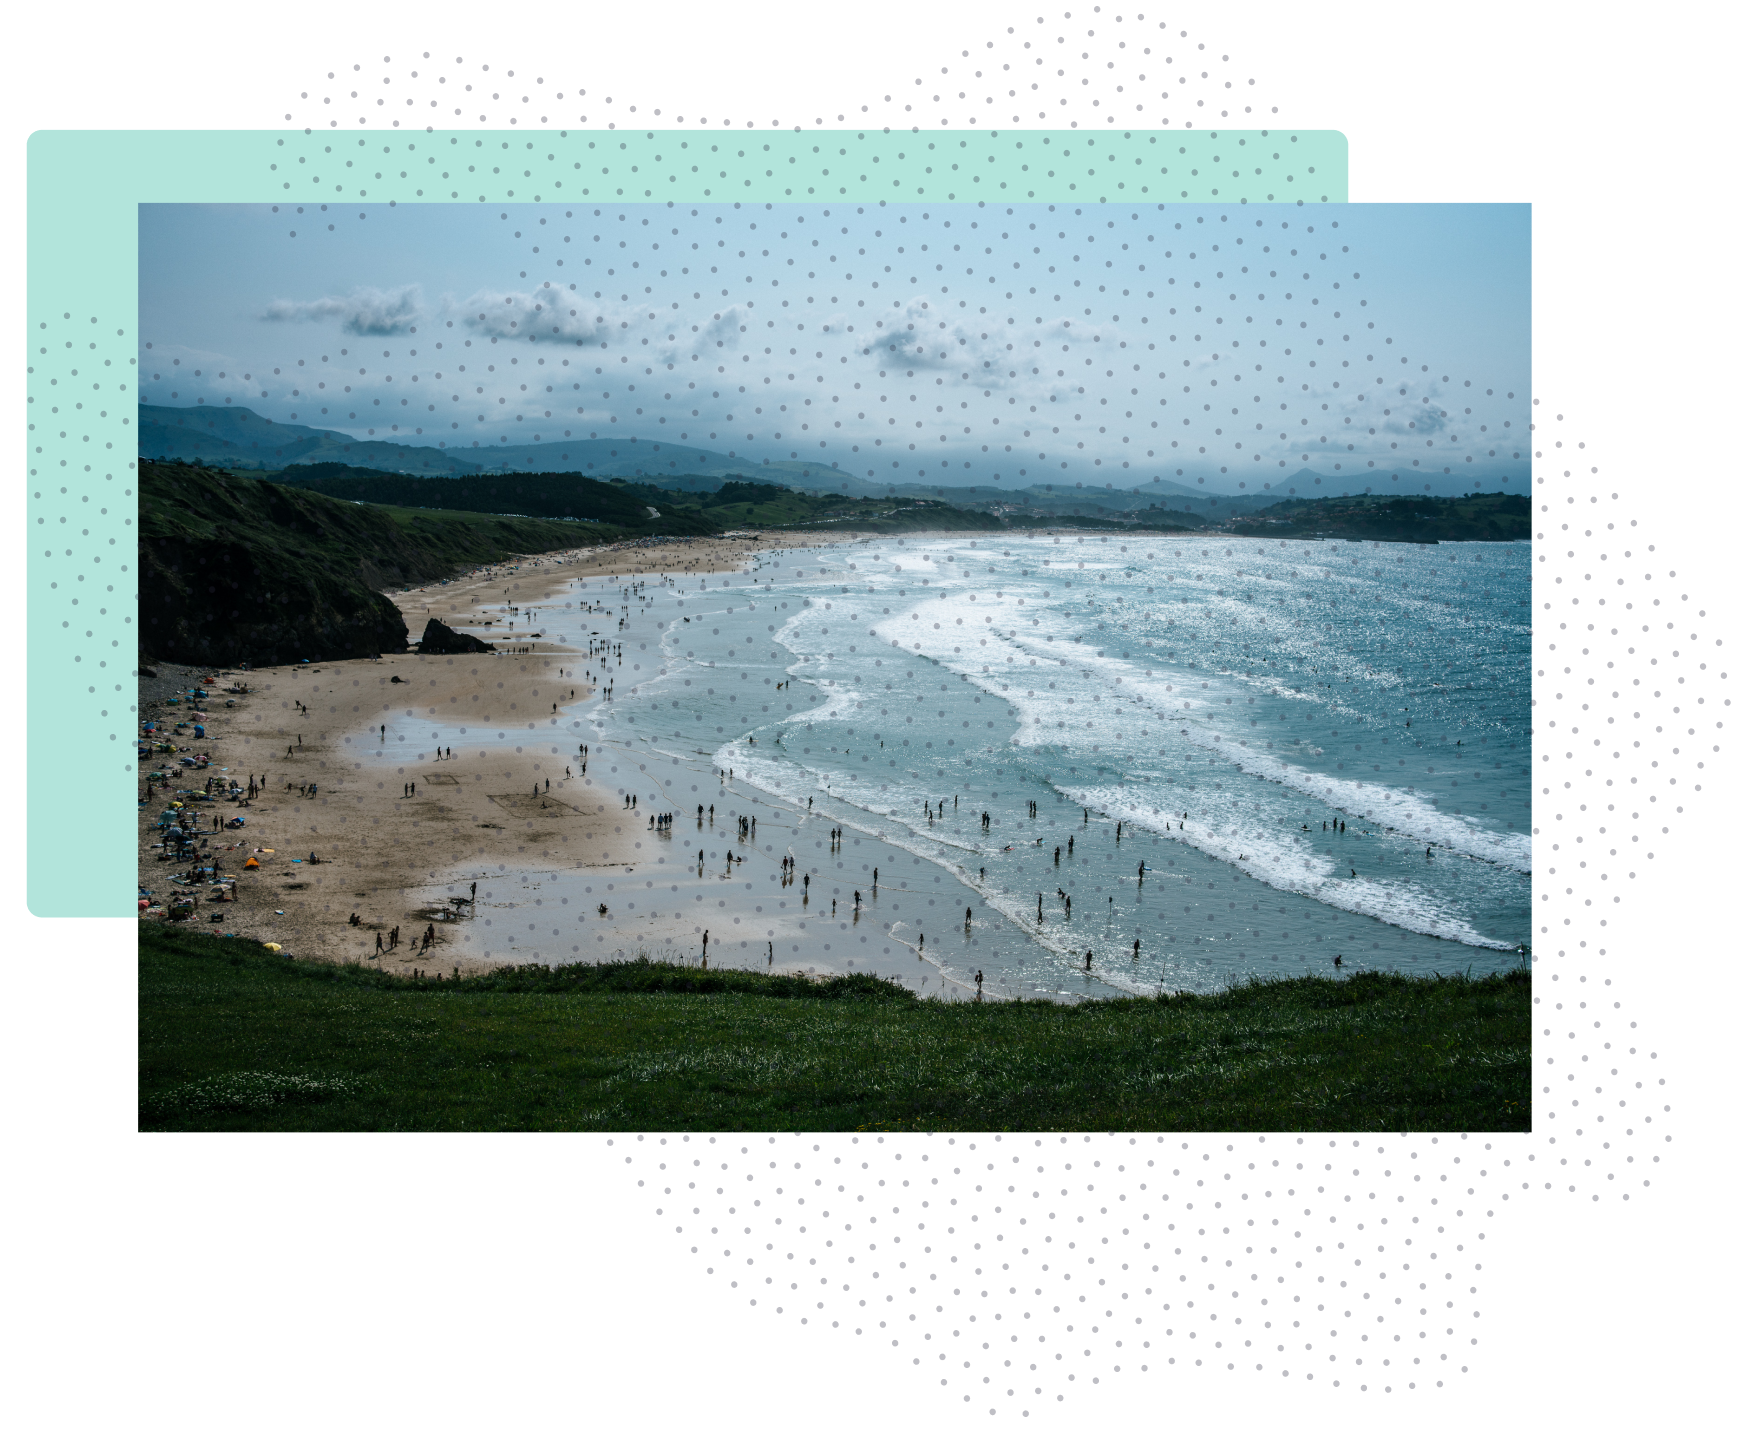 graphic of a beach